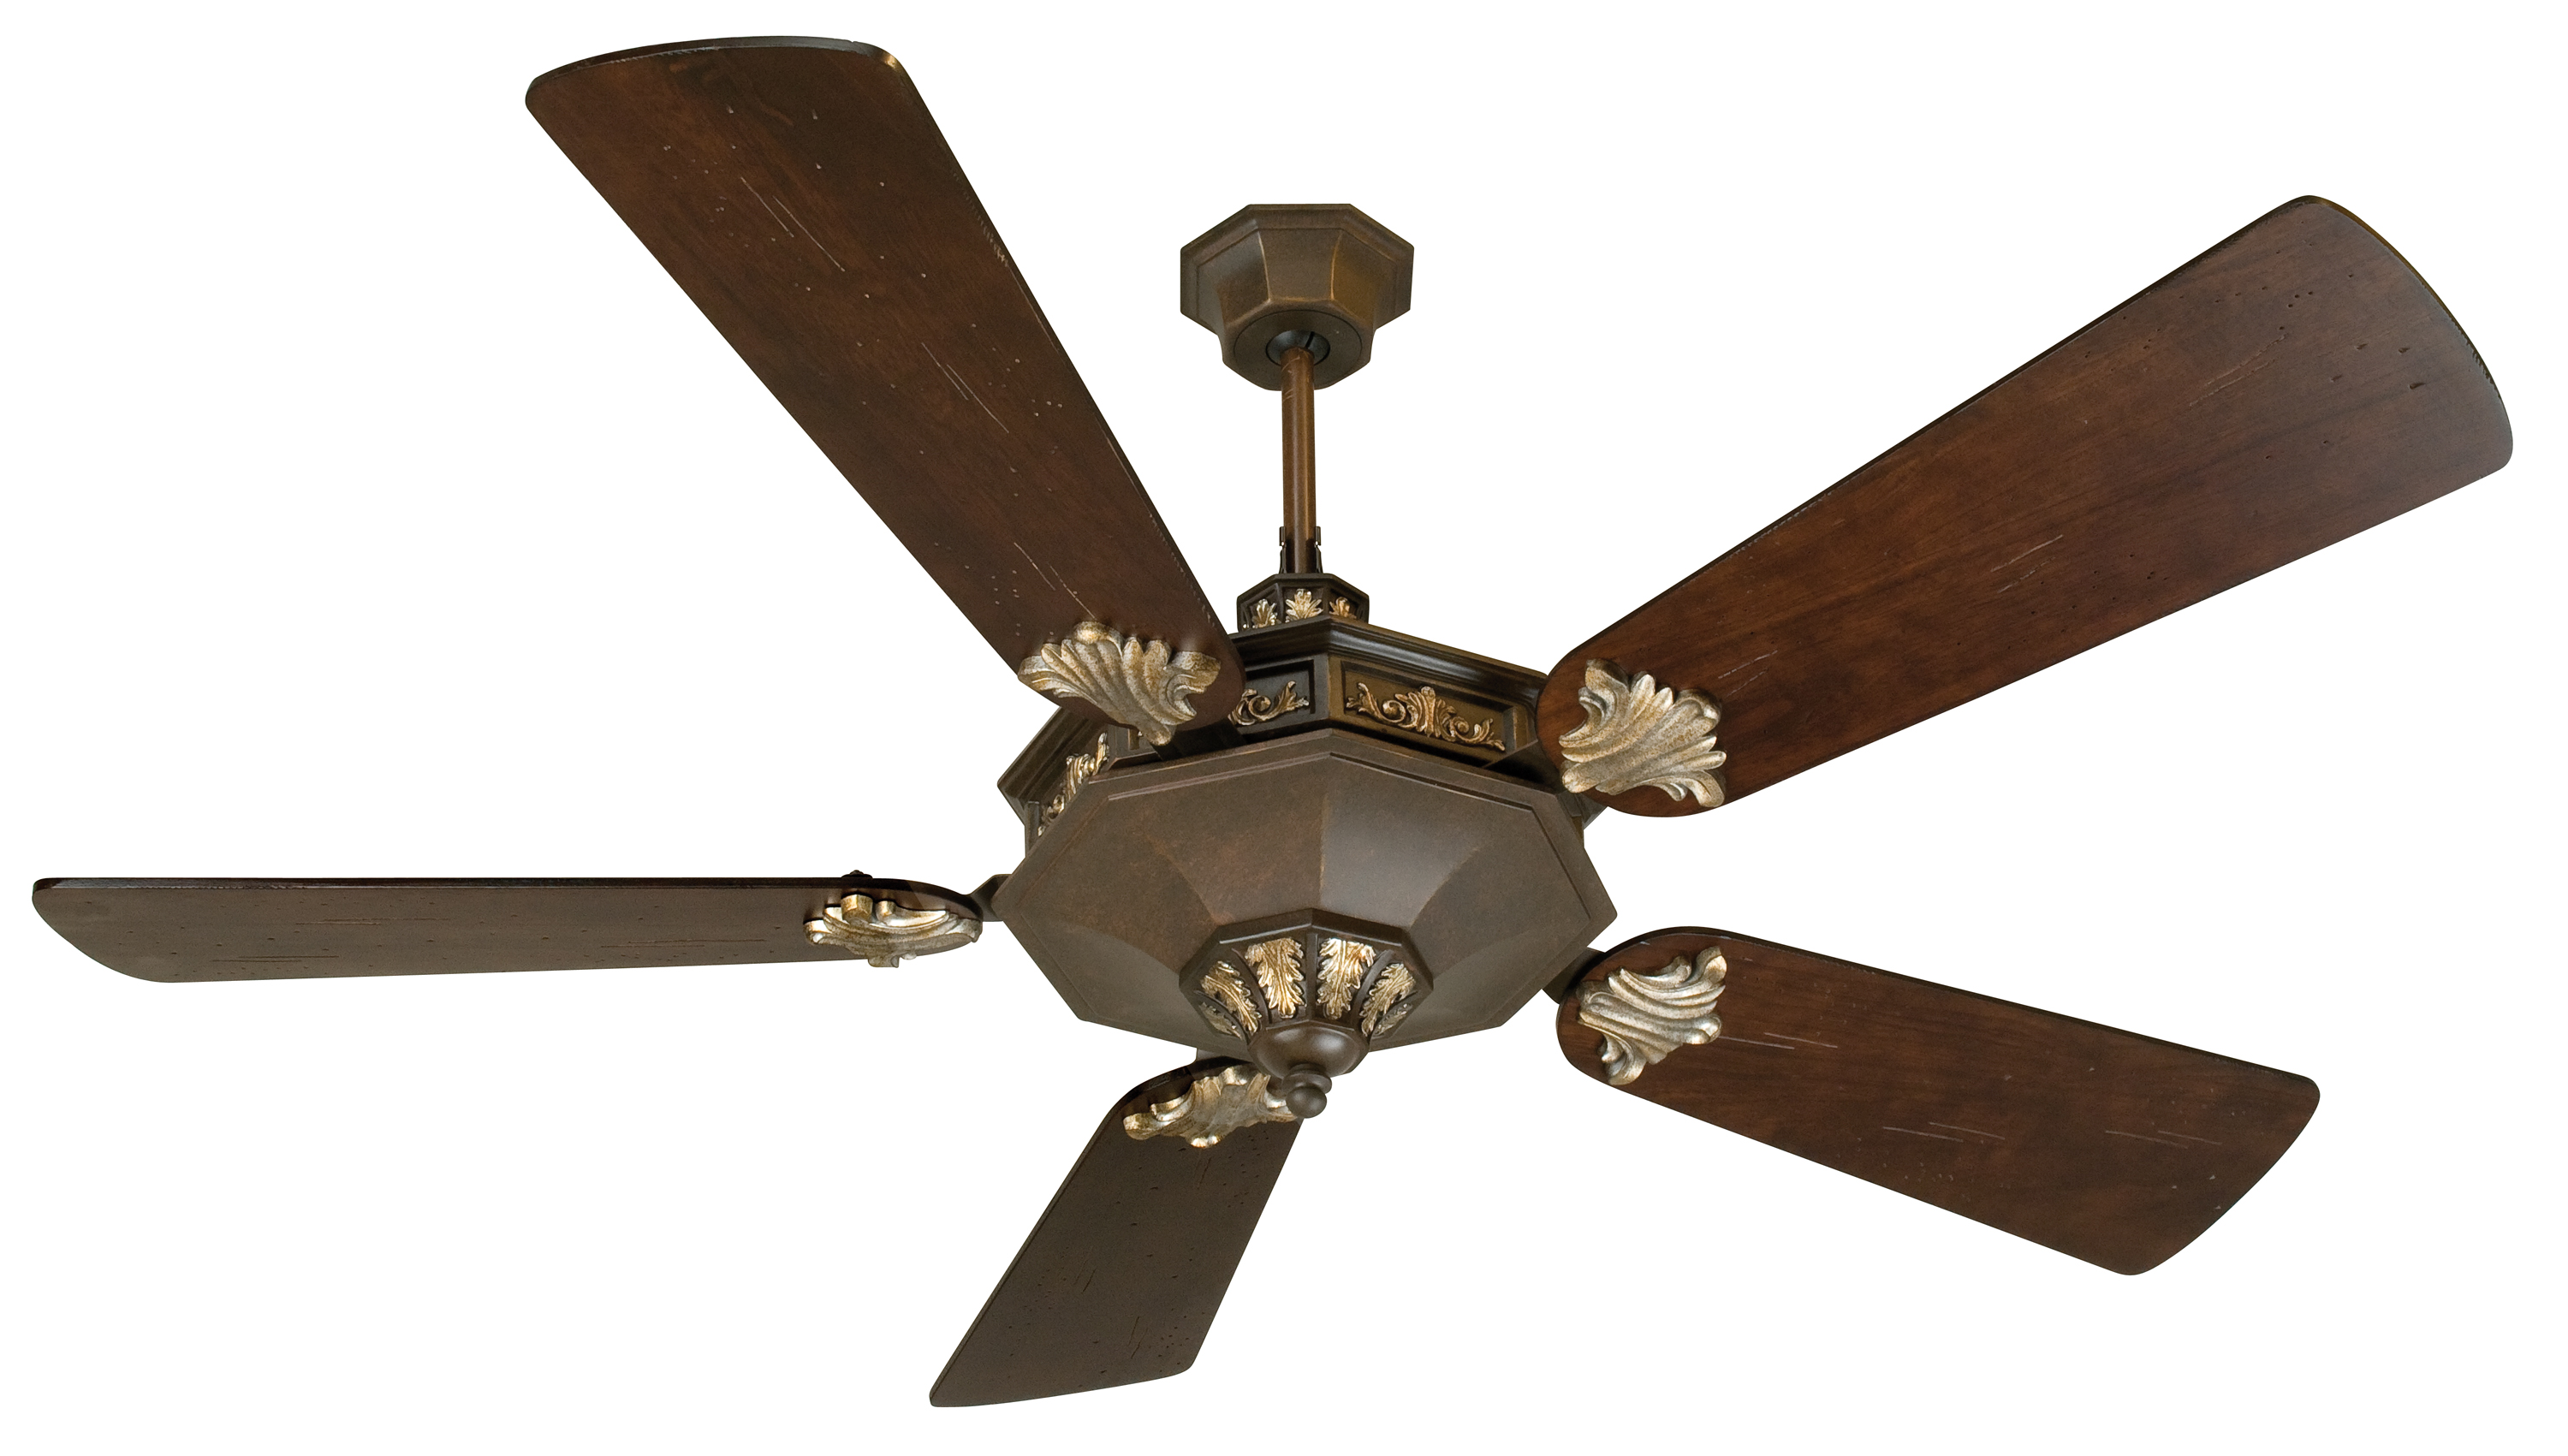 Rustic weathered patina ceiling fan fan comes as pictured Exhale fan review